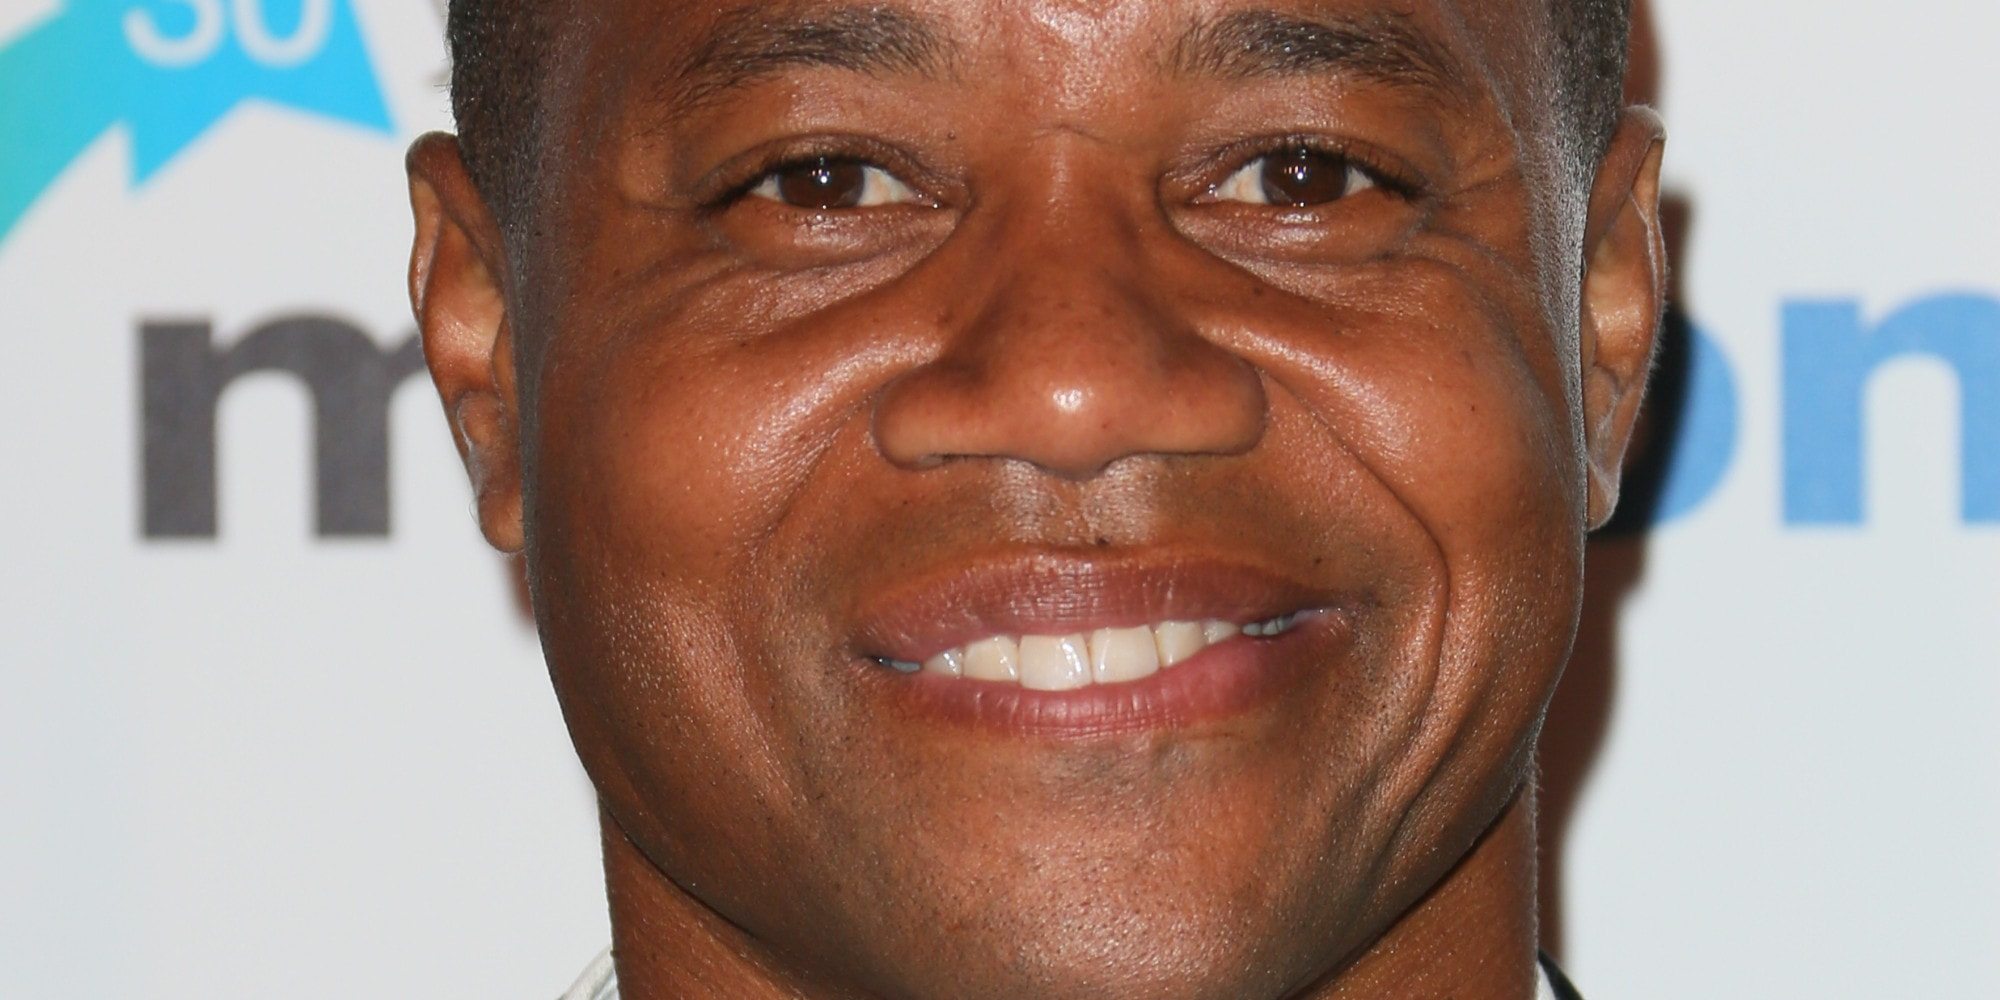 Cuba Gooding Jr. Desktop wallpapers